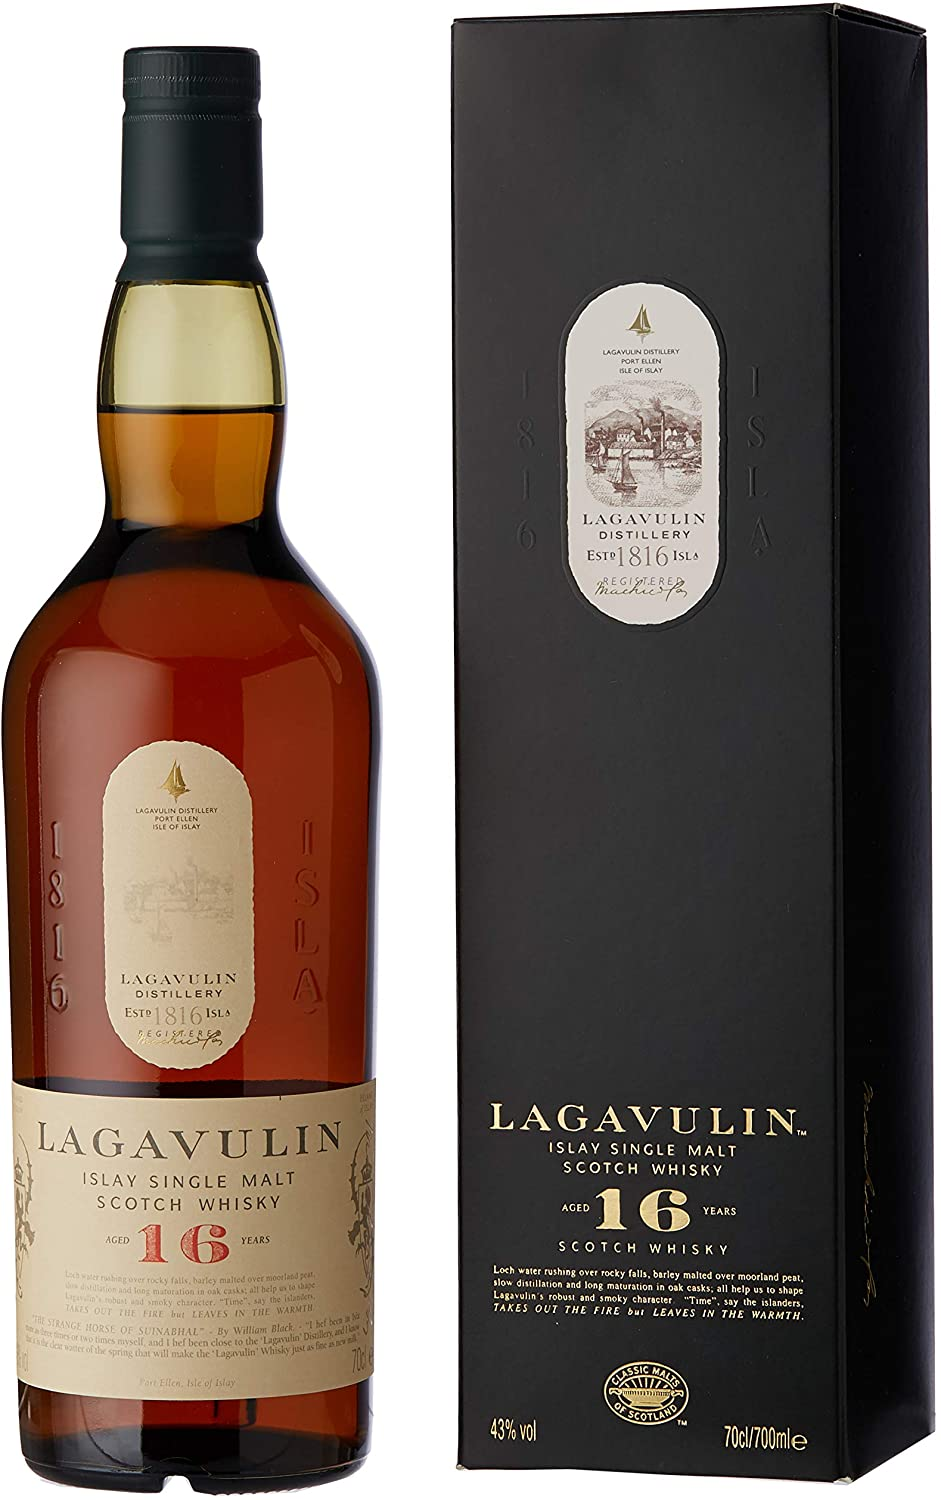 Lagavulin malt 16 years old | Интернет-магазин Alcomag.kz (г. Алматы, Казахстан)